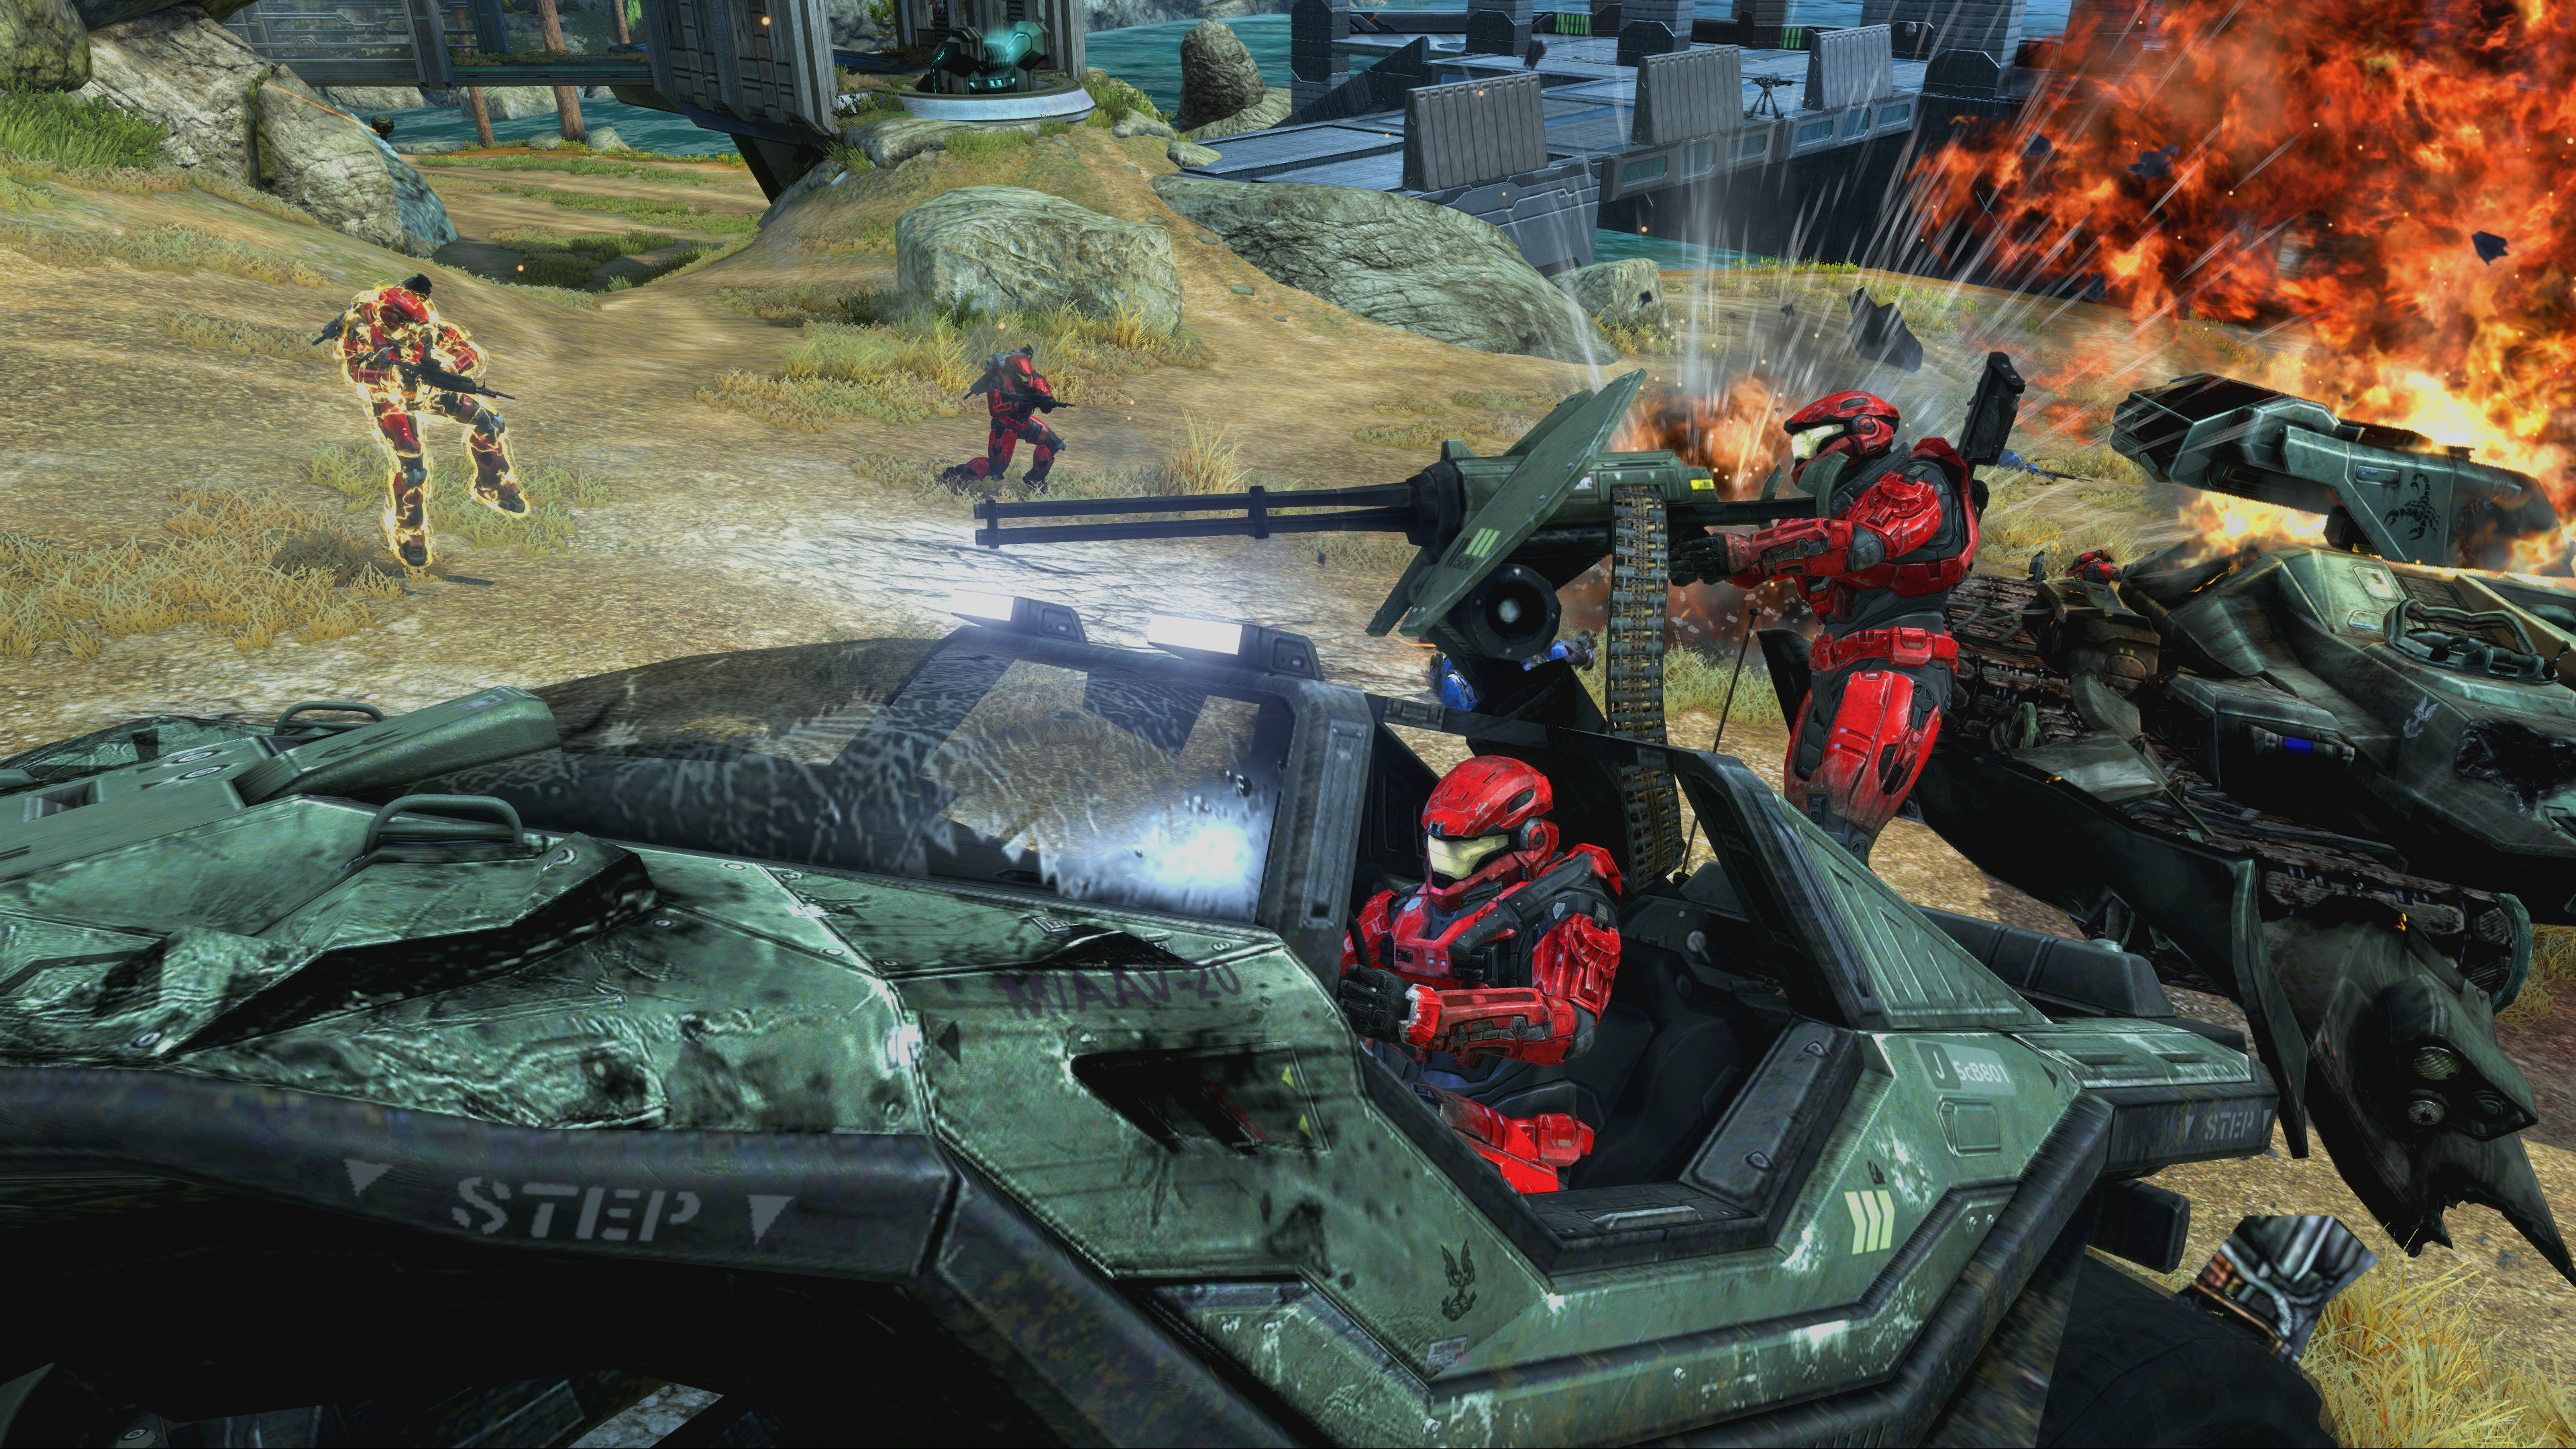 Halo: Combat Evolved Anniversary begins beta testing on PC next month